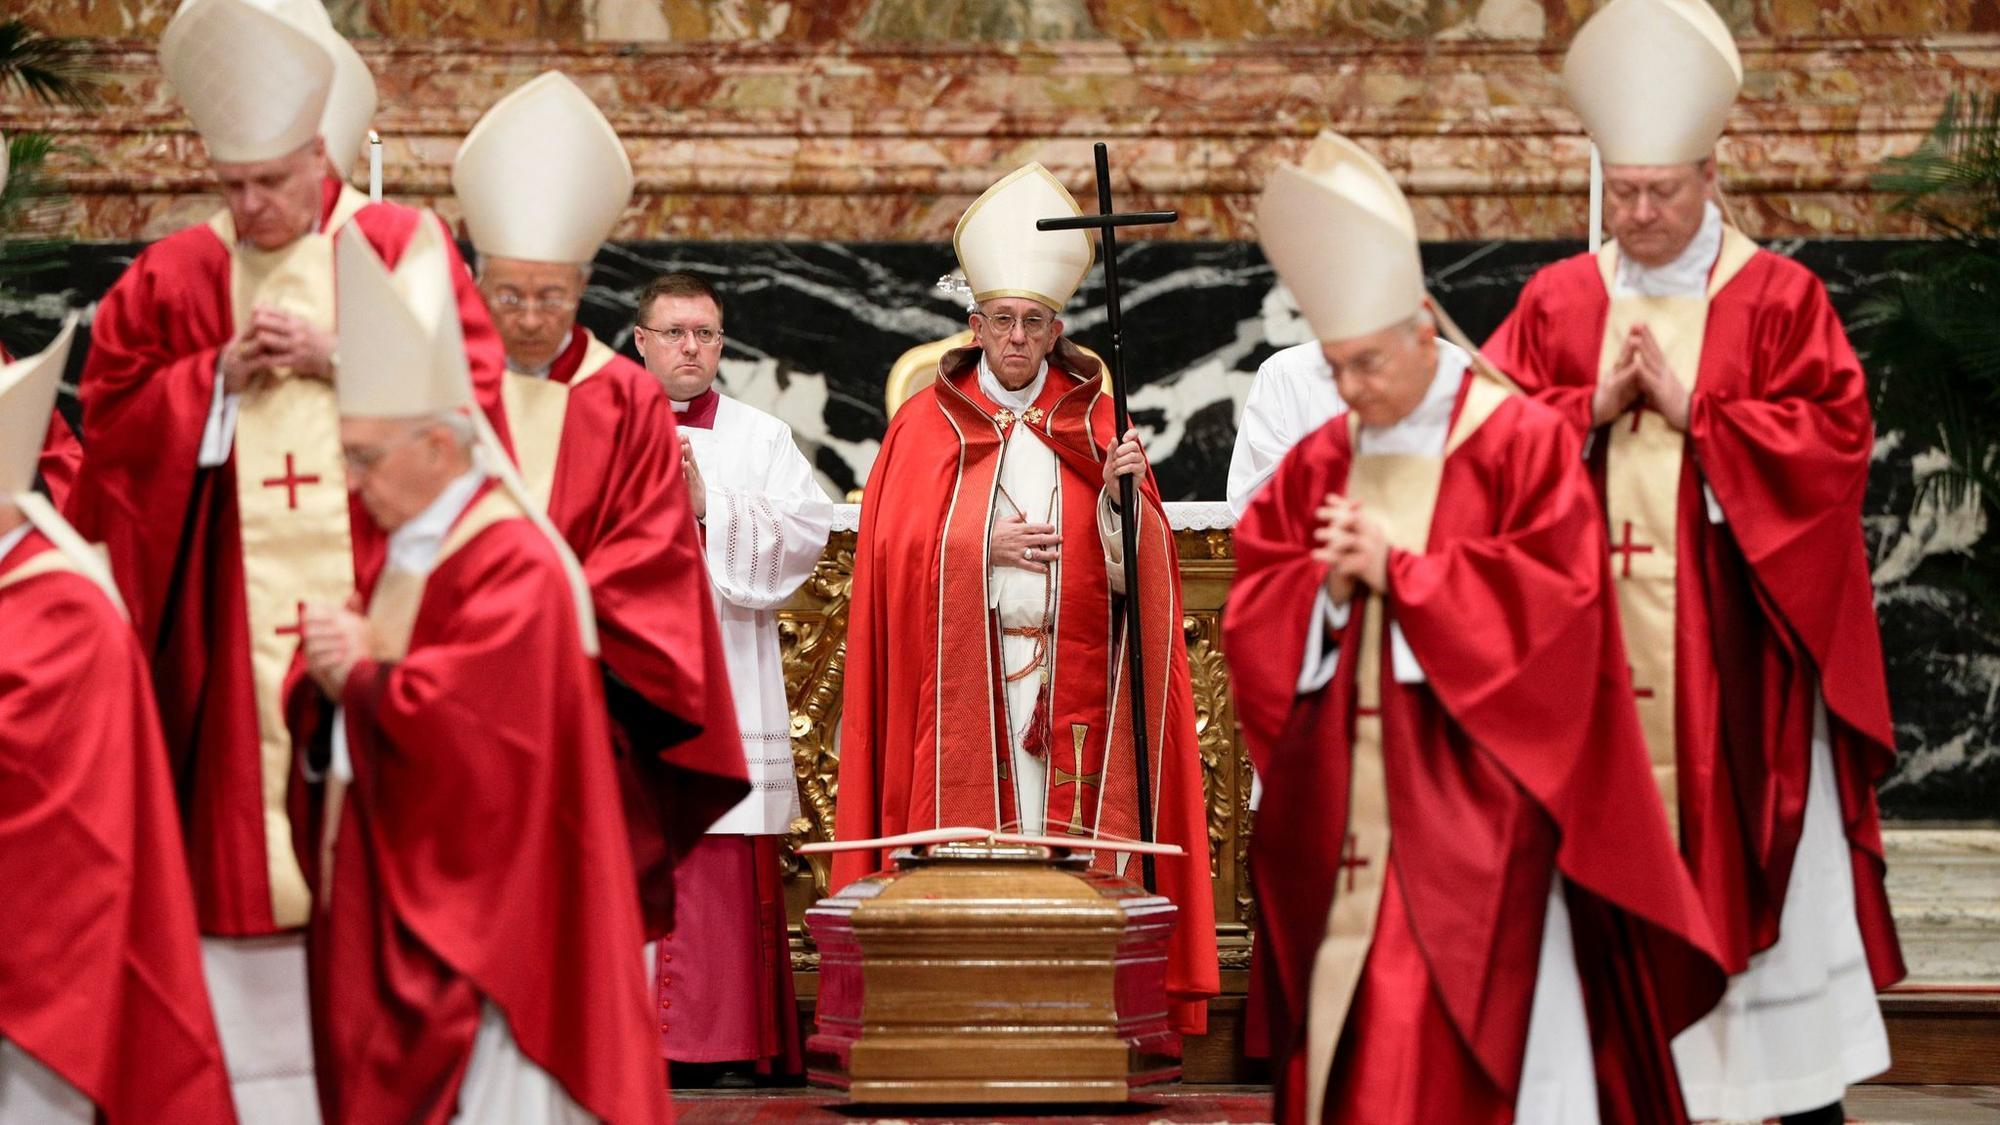 pope francis gives final blessing at cardinal laws